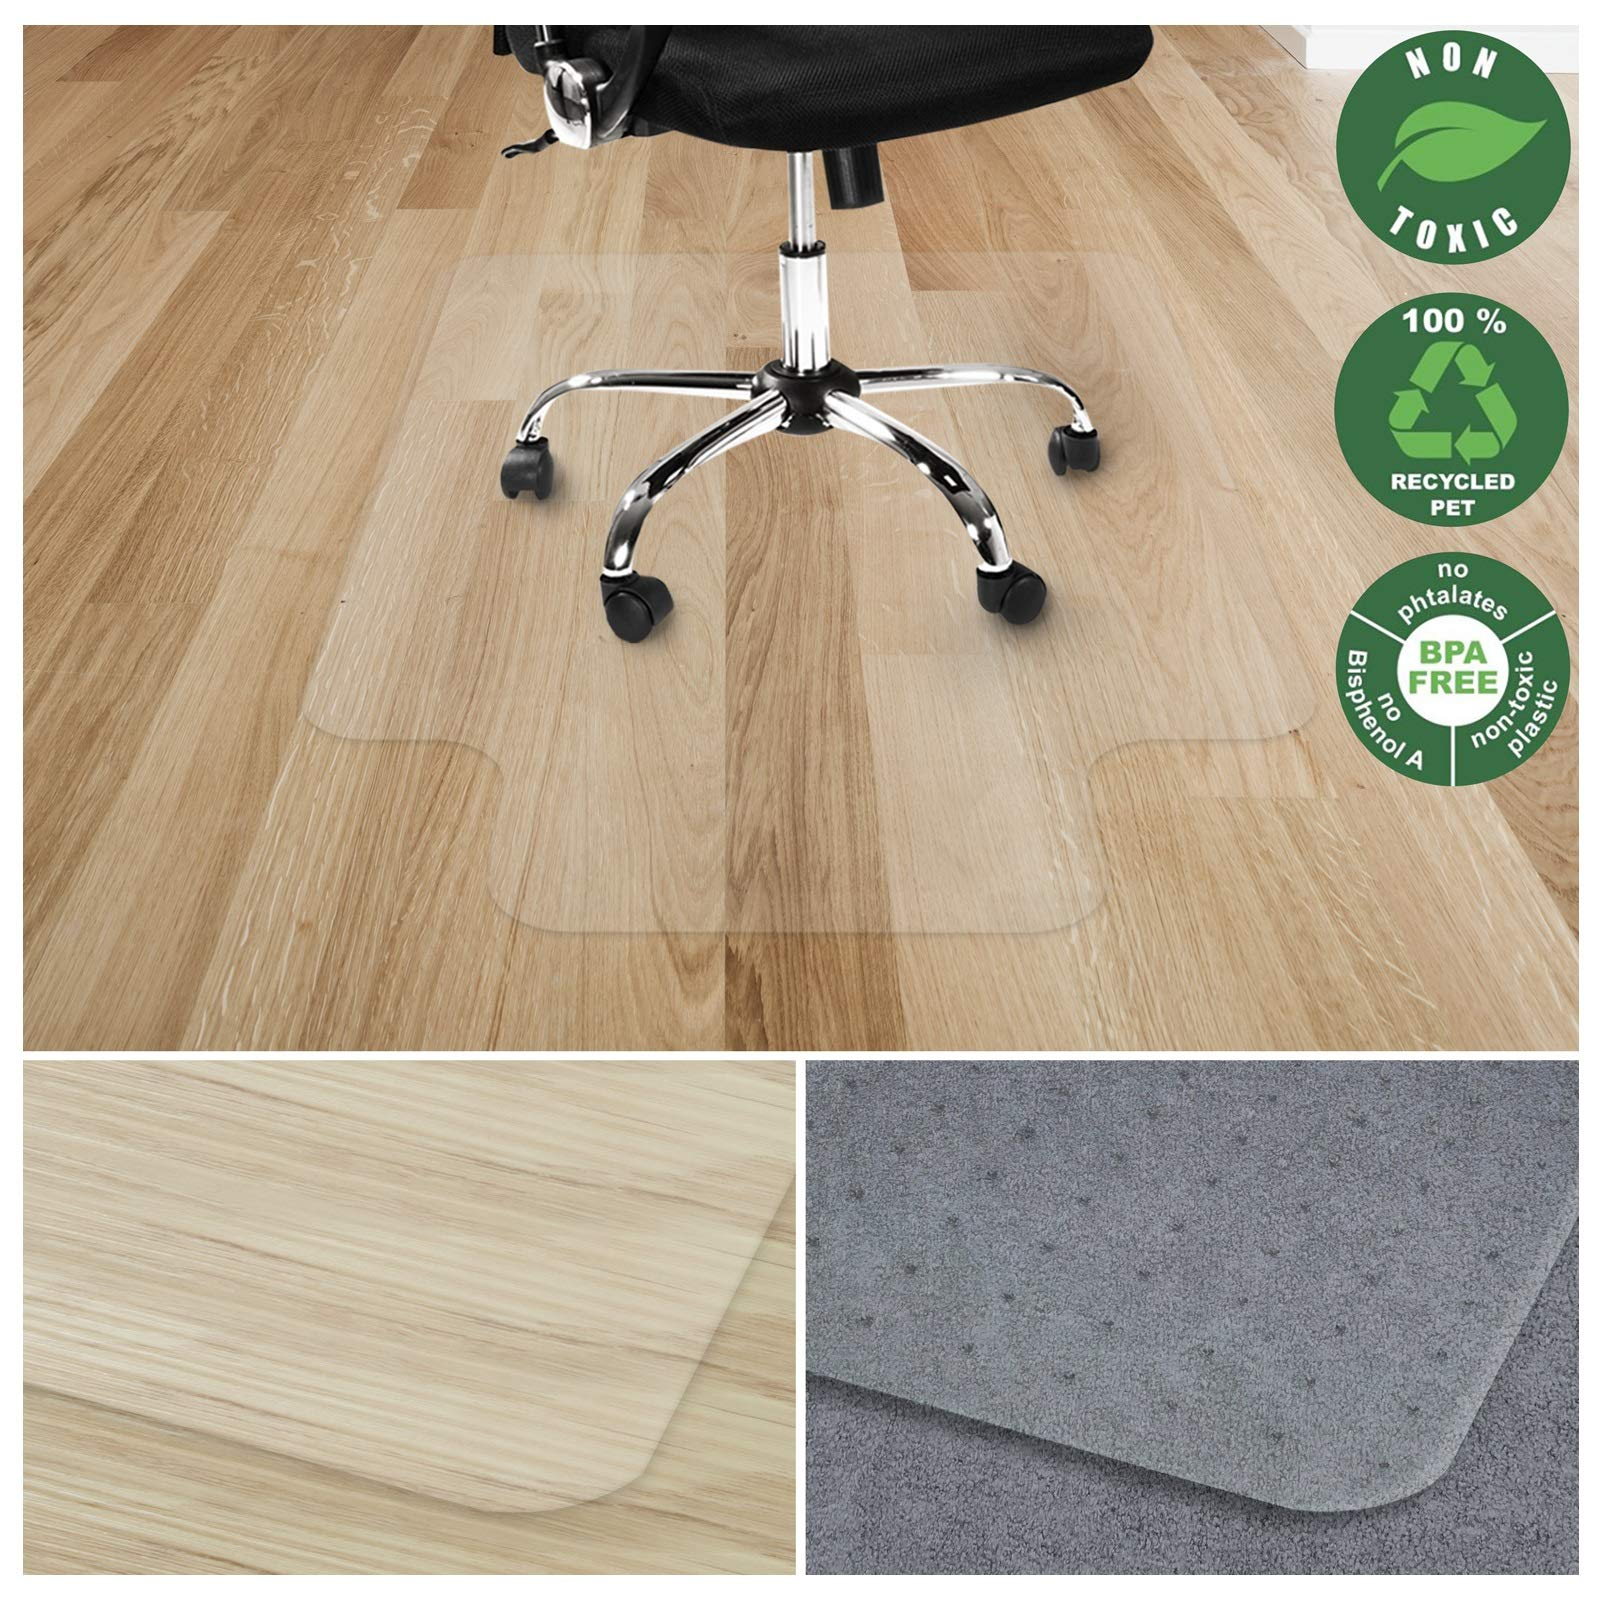 Office Marshal Chair Mat with Lip for Hard Floors   Eco-Friendly Series Chair Floor Protector   100% Recycled (PET) Floor Mat for Office or Home Use   Multiple Sizes   Translucent - 48'' x 53''